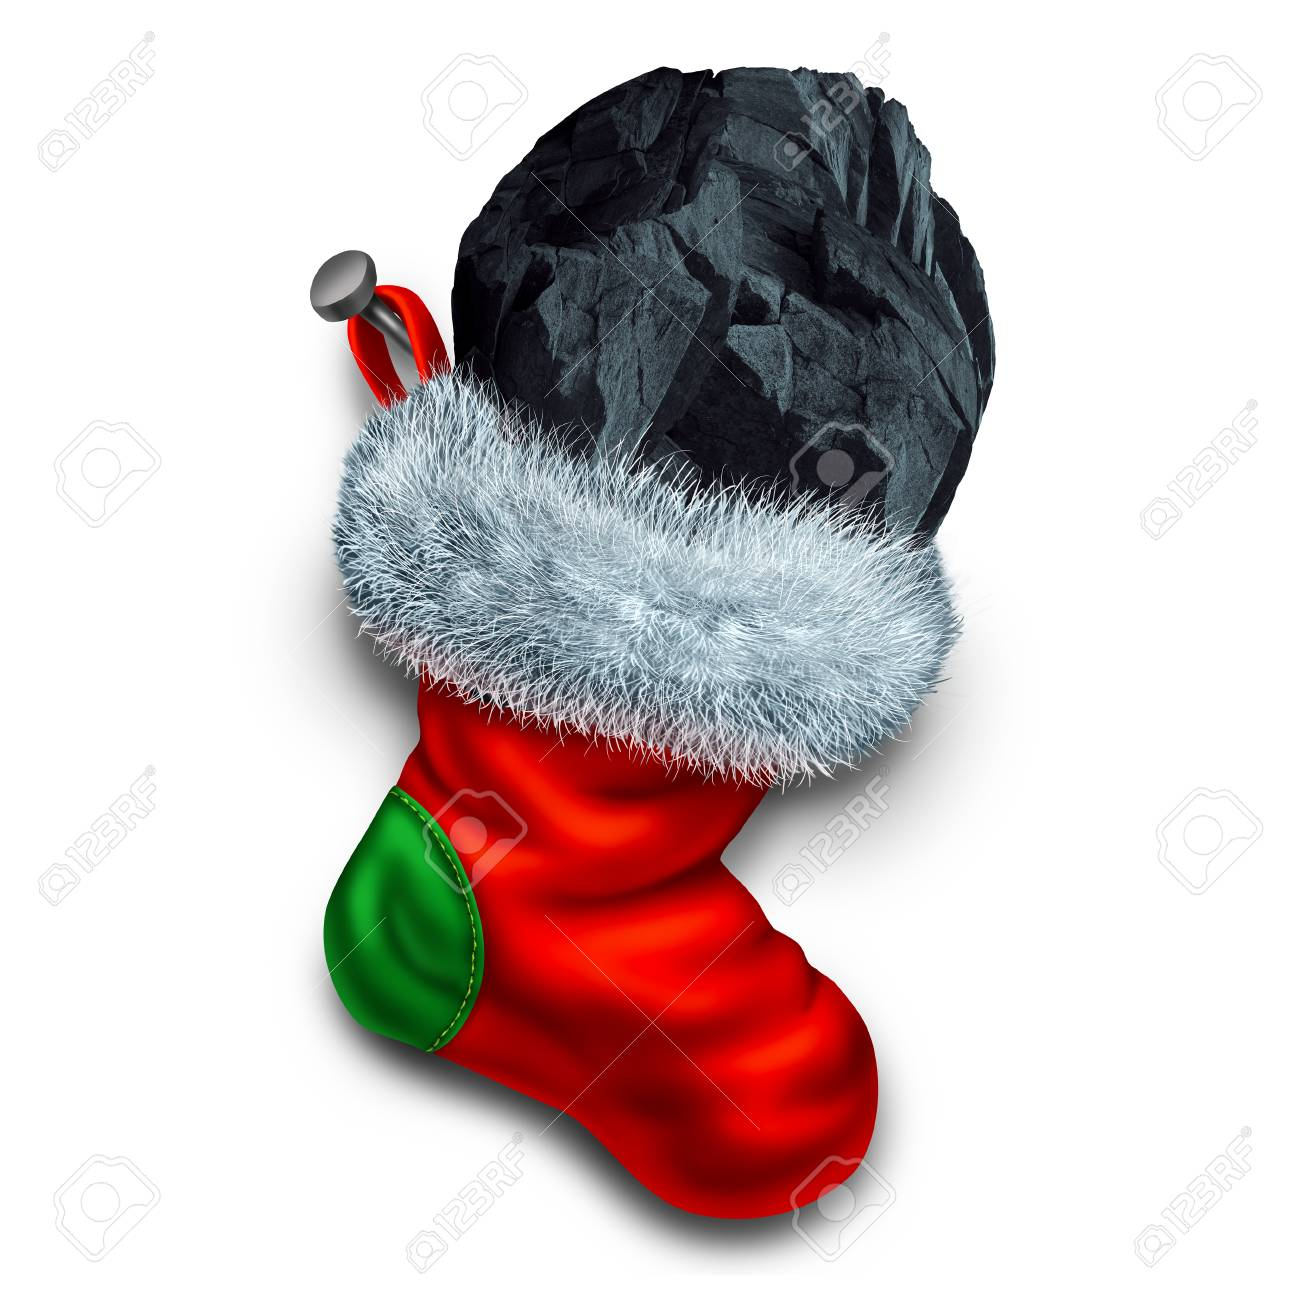 Chunk Of Coal In Holiday Stocking As A Christmas Symbol For Naughty ...